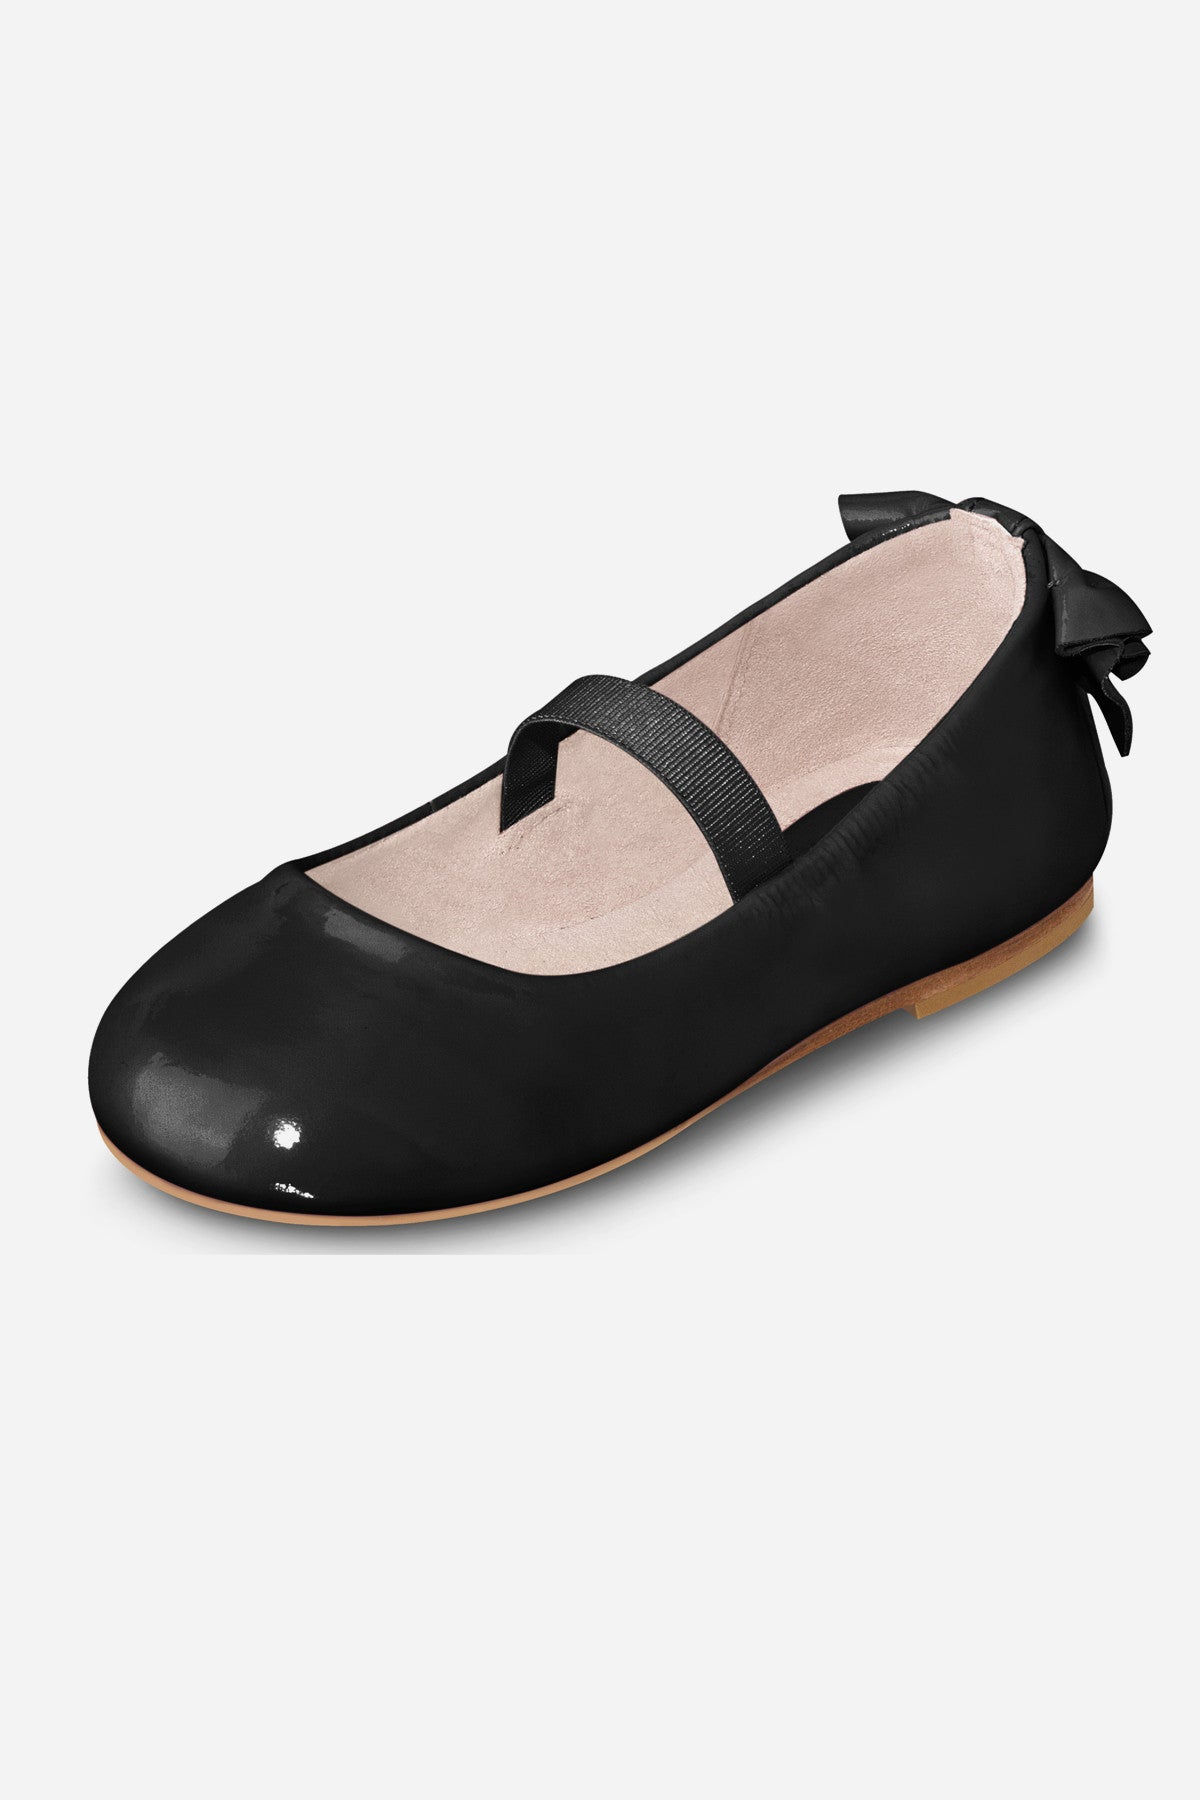 Bloch Black Patent Ballerina Girls Shoes - Toddler